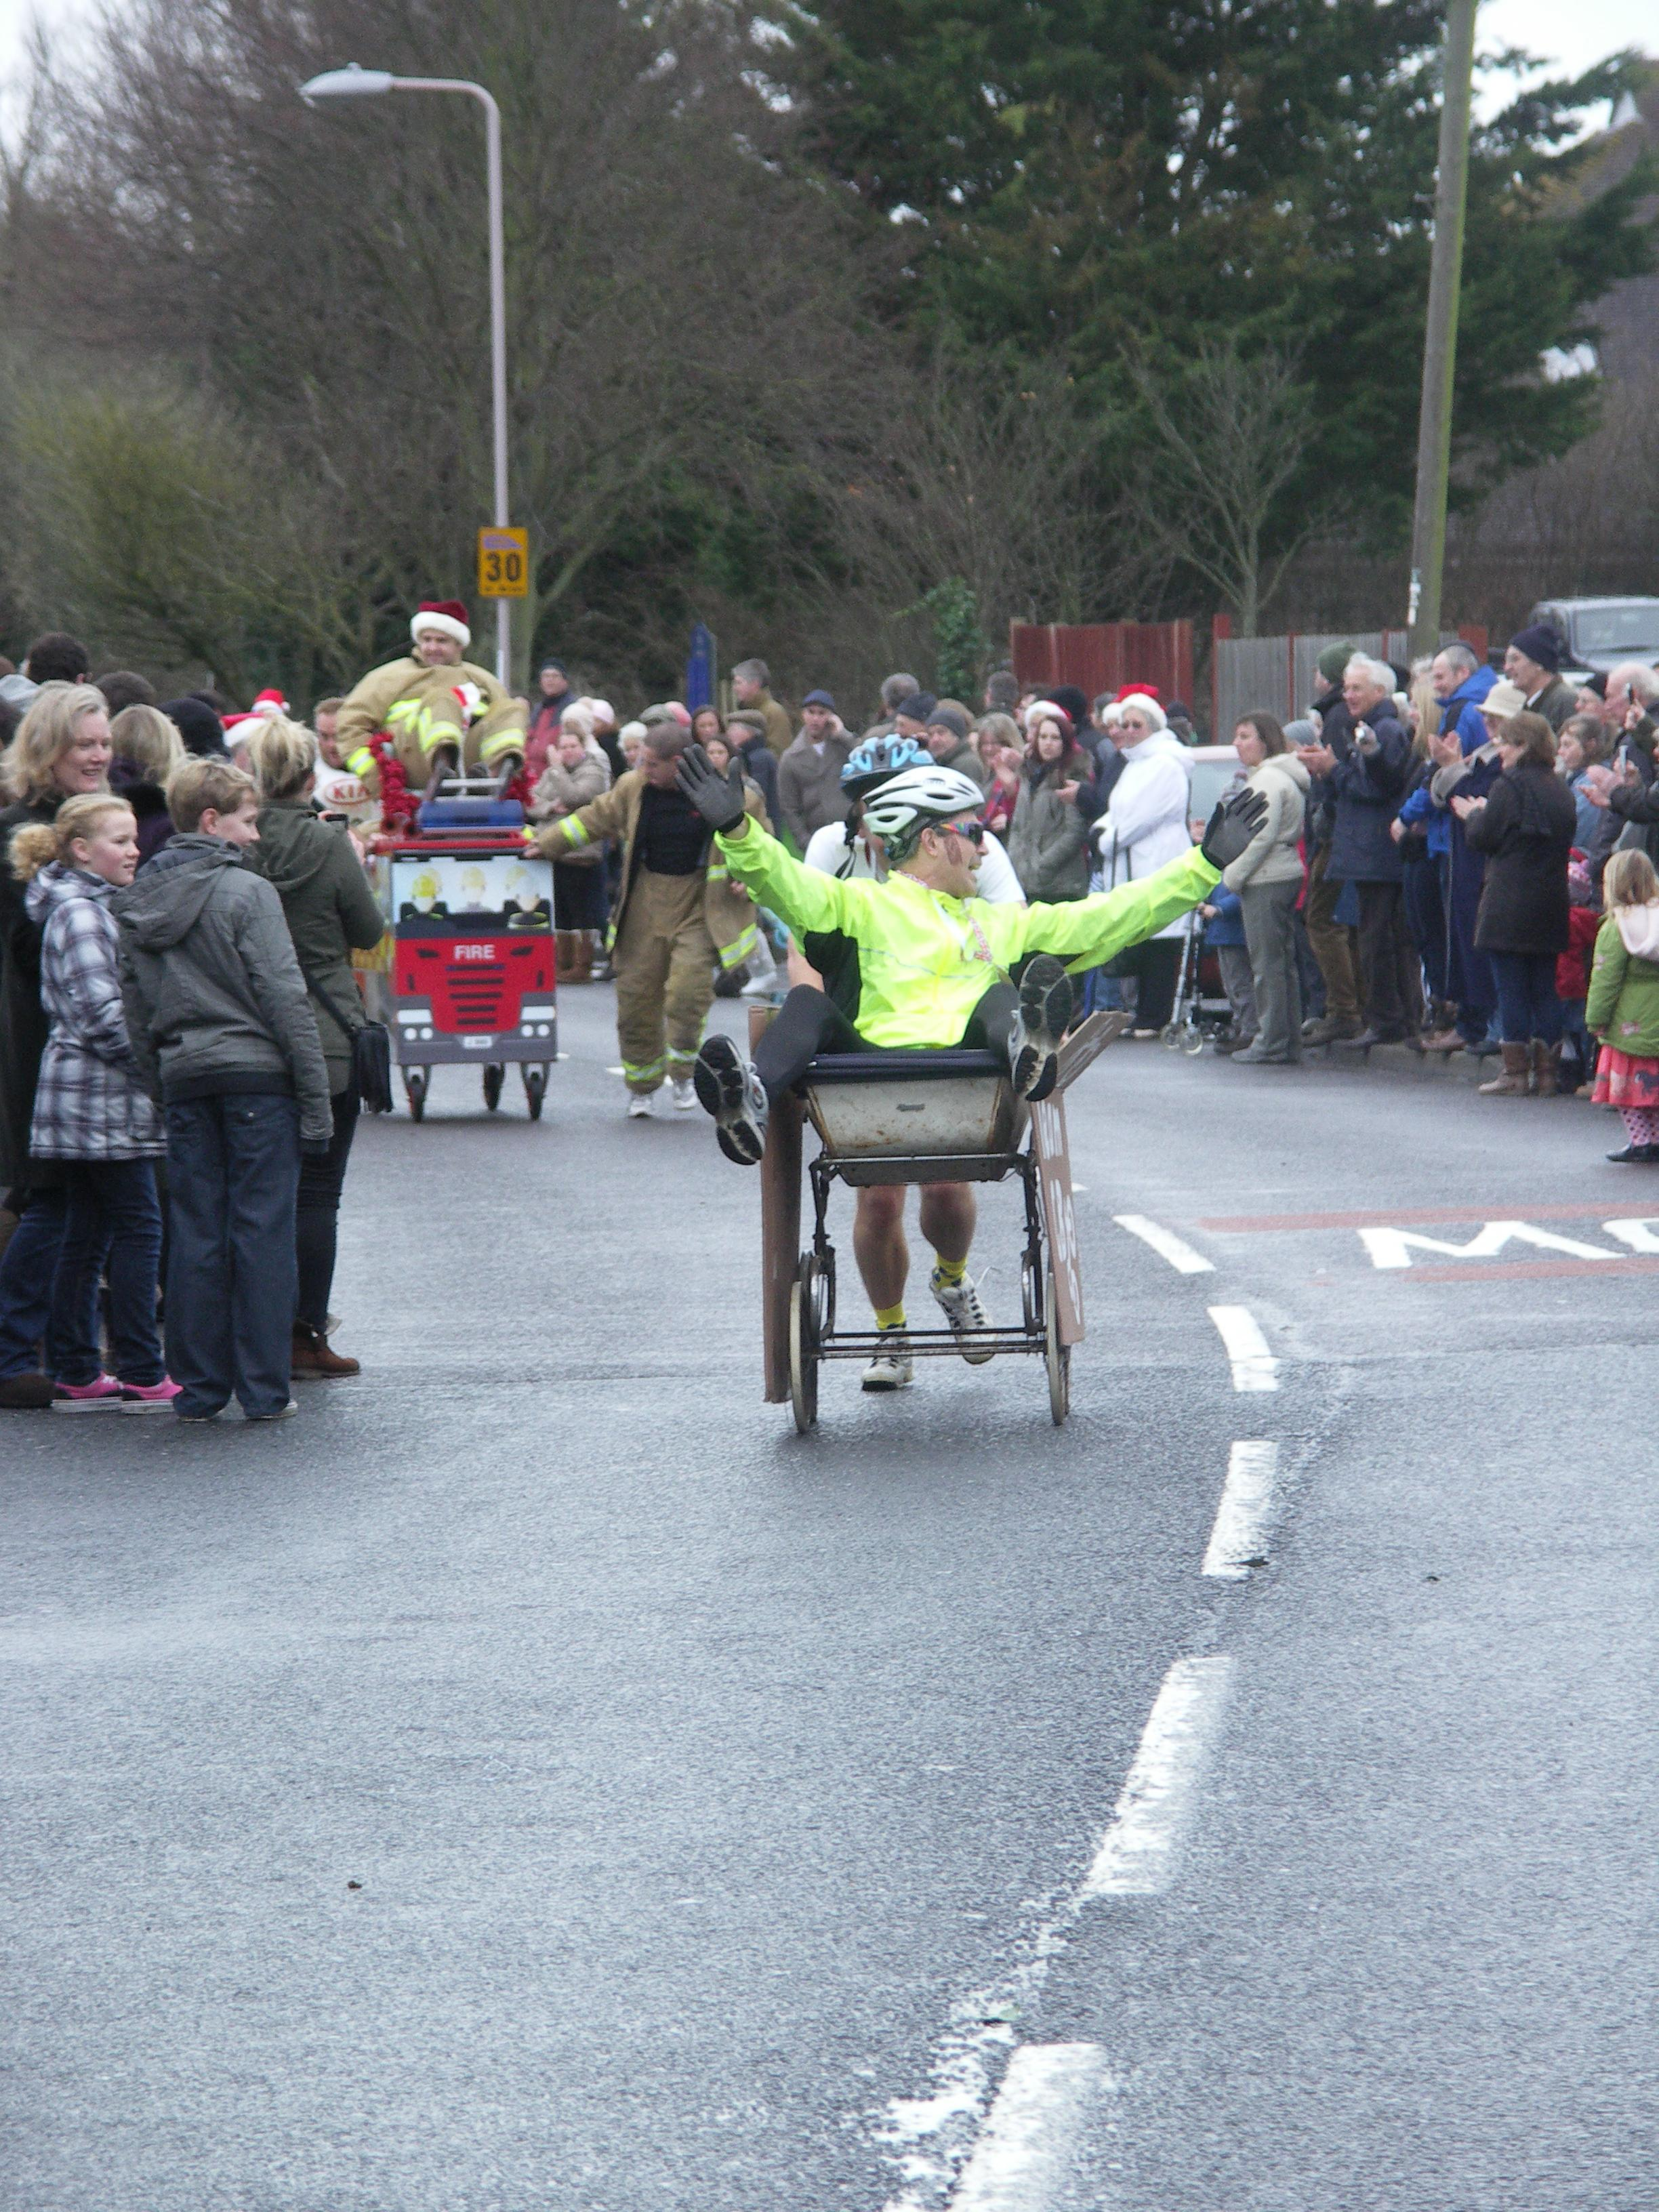 http://www.paghampramrace.com/wp-content/uploads/2018/04/PICT0076.jpg